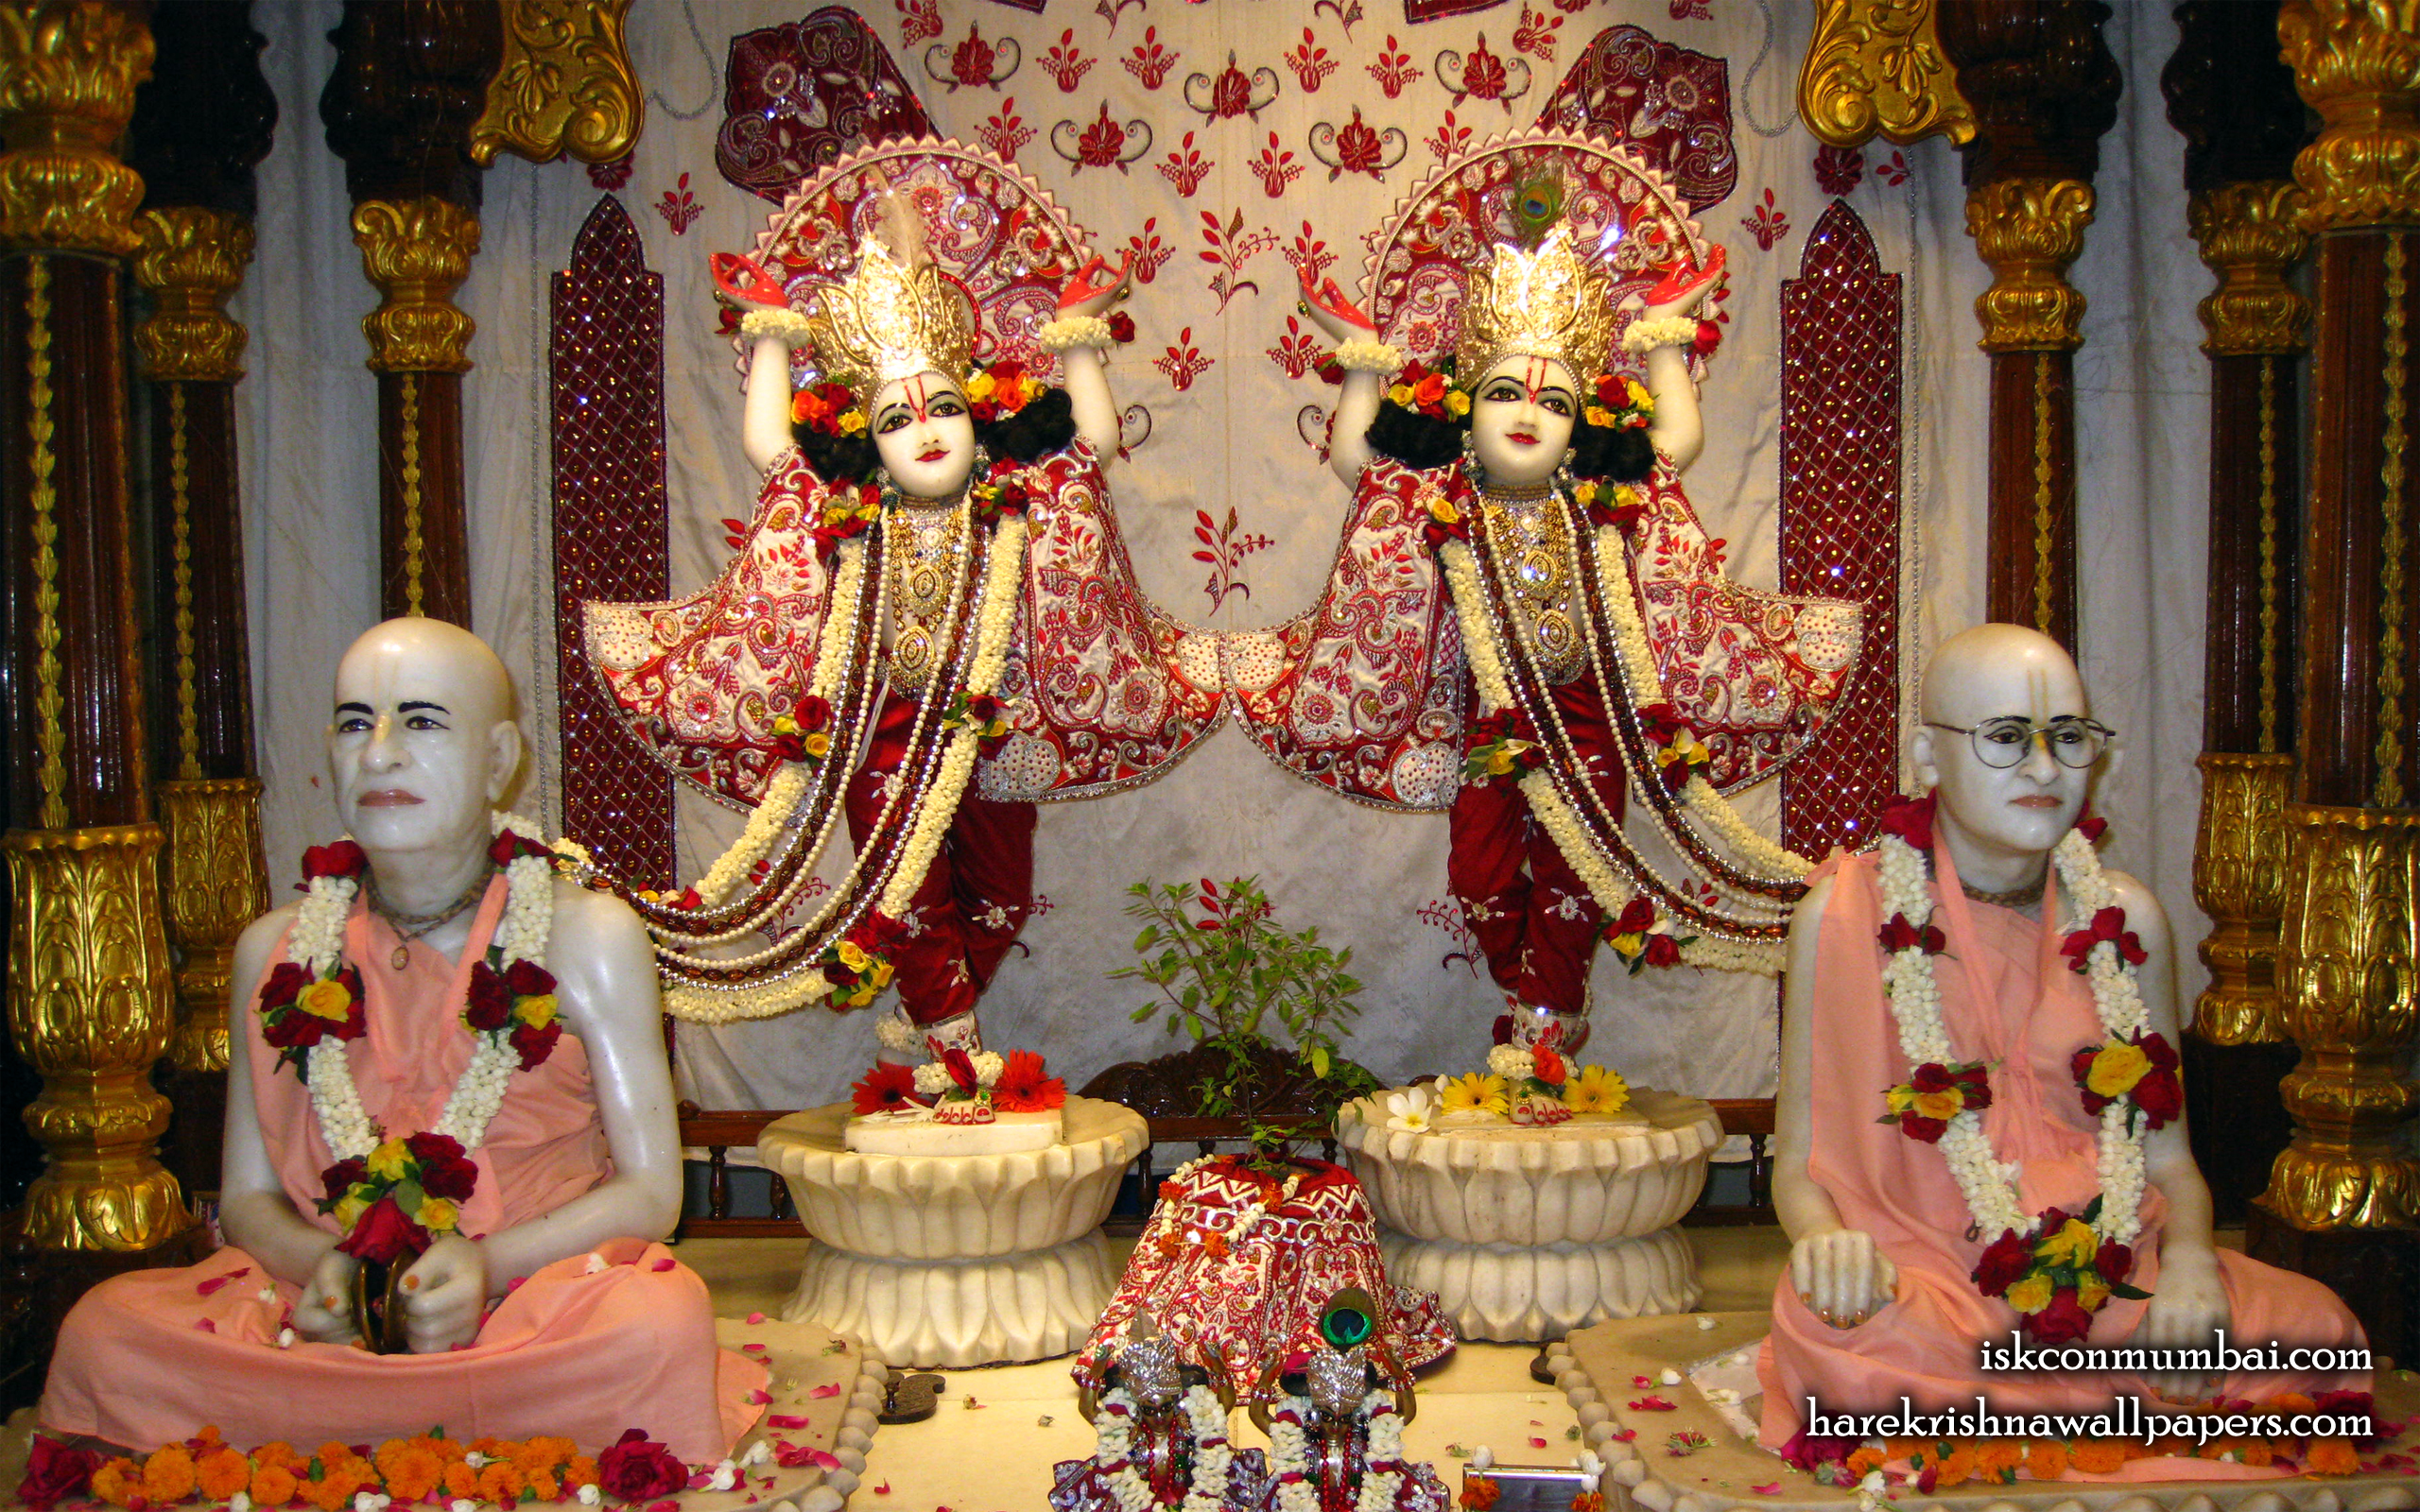 Sri Sri Gaura Nitai With Acharyas Wallpaper (020) Size 2560x1600 Download